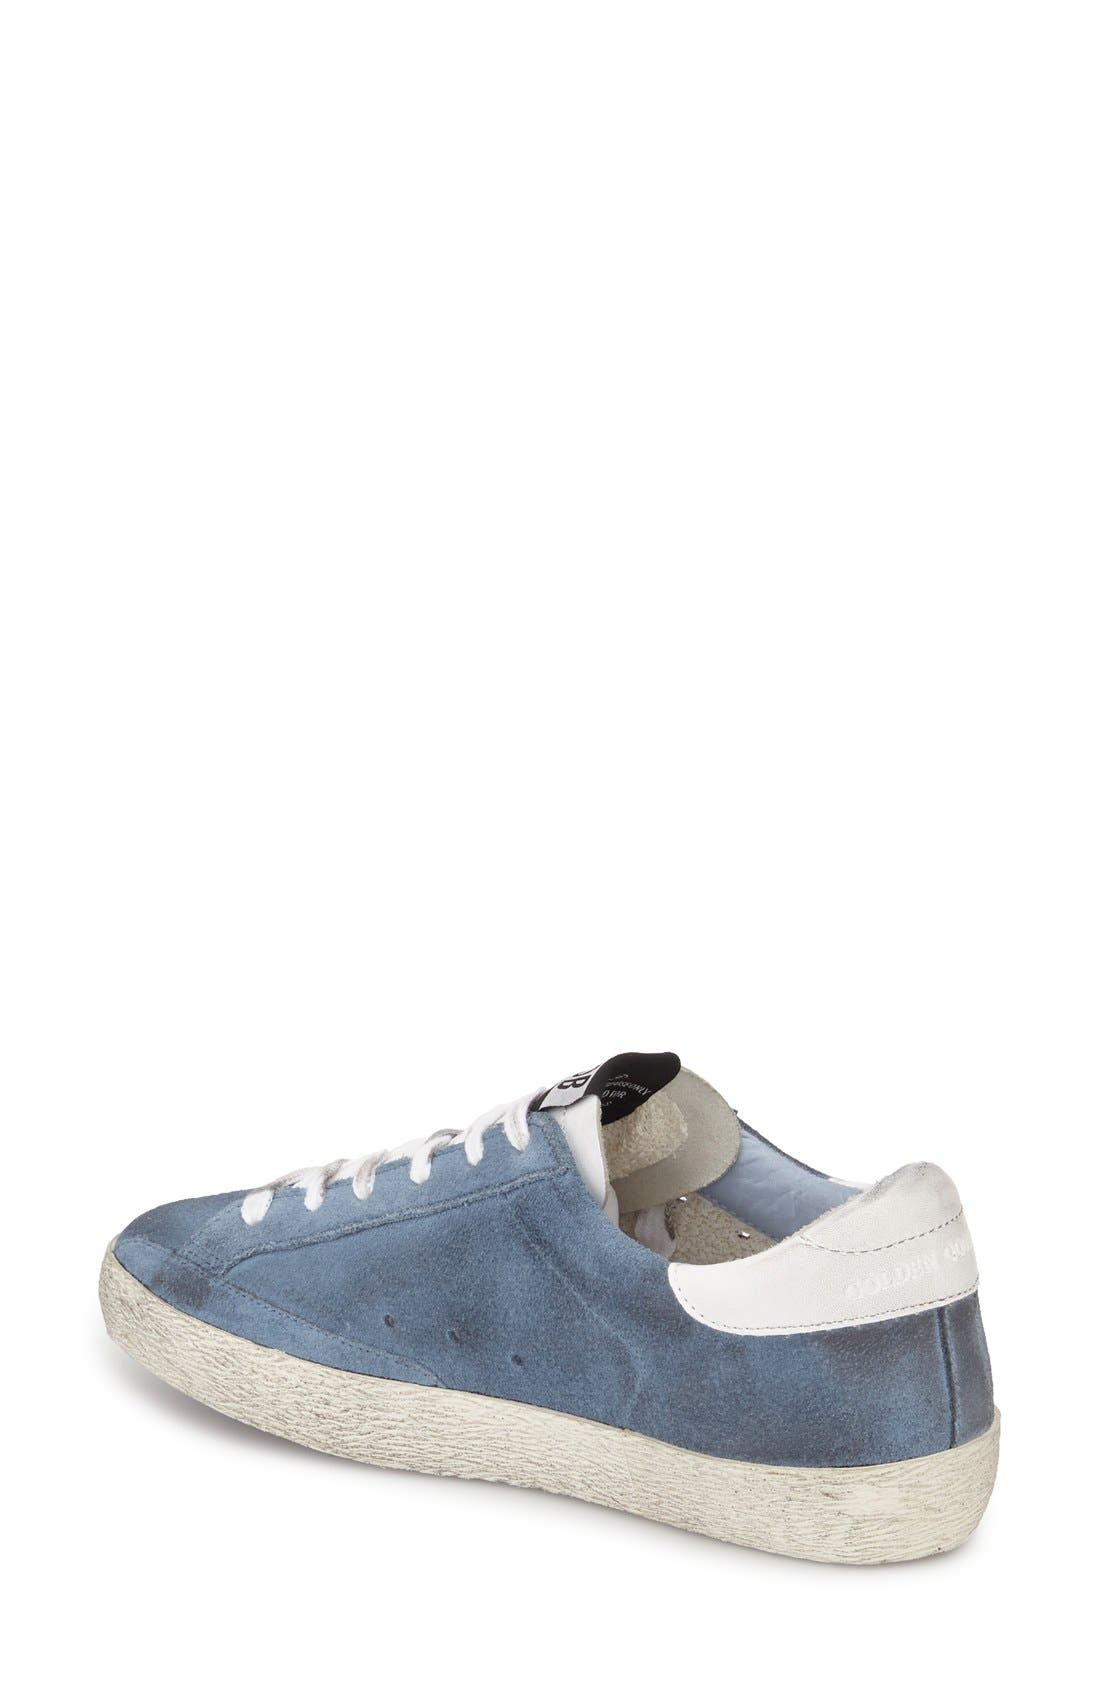 Alternate Image 2  - Golden Goose 'Superstar' Low Top Sneaker (Women)